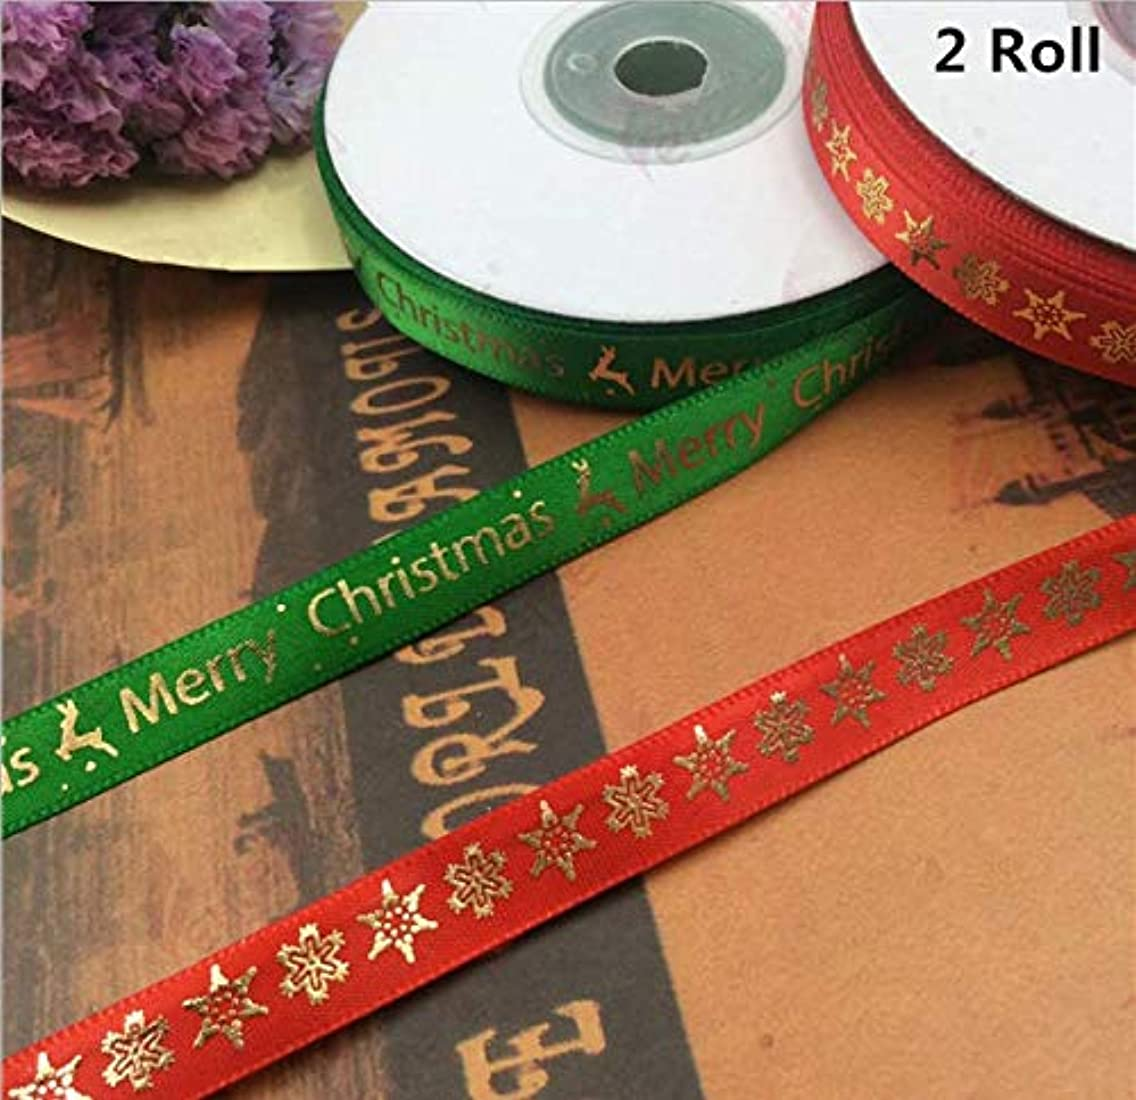 2 Rolls 44 Meters Christmas Ribbon, Carnatory Printed Merry Christmas Ribbons Gift Wrap Glitter Ribbon for Christmas Decorations, Gift Wrapping, Craft Sewing or Wedding Decorations